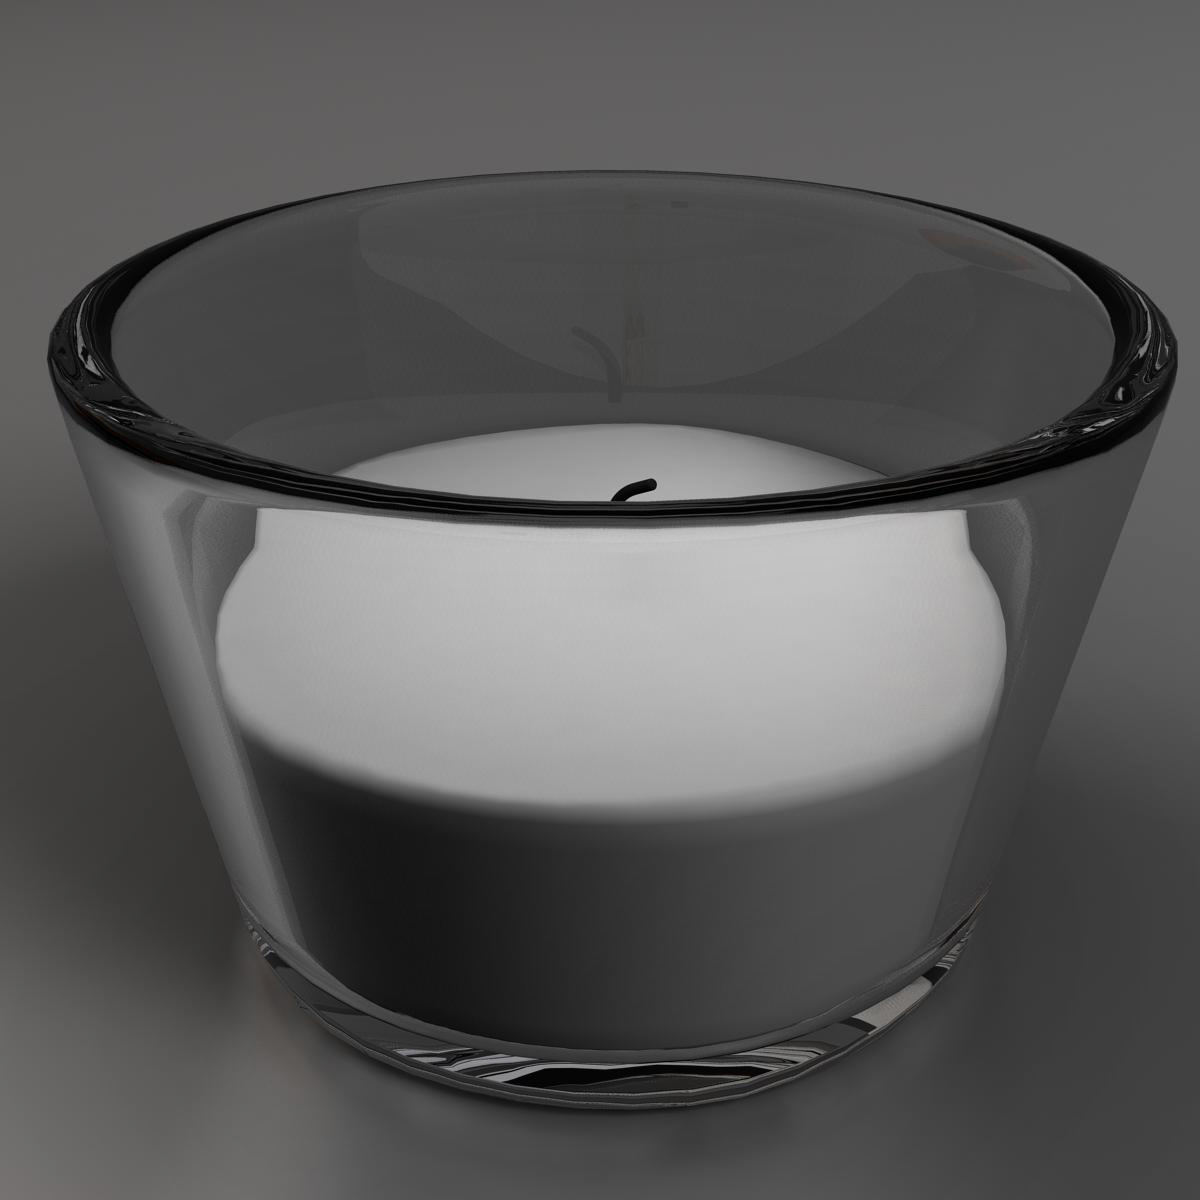 candle 3 3d model 3ds max fbx ma mb obj 158281